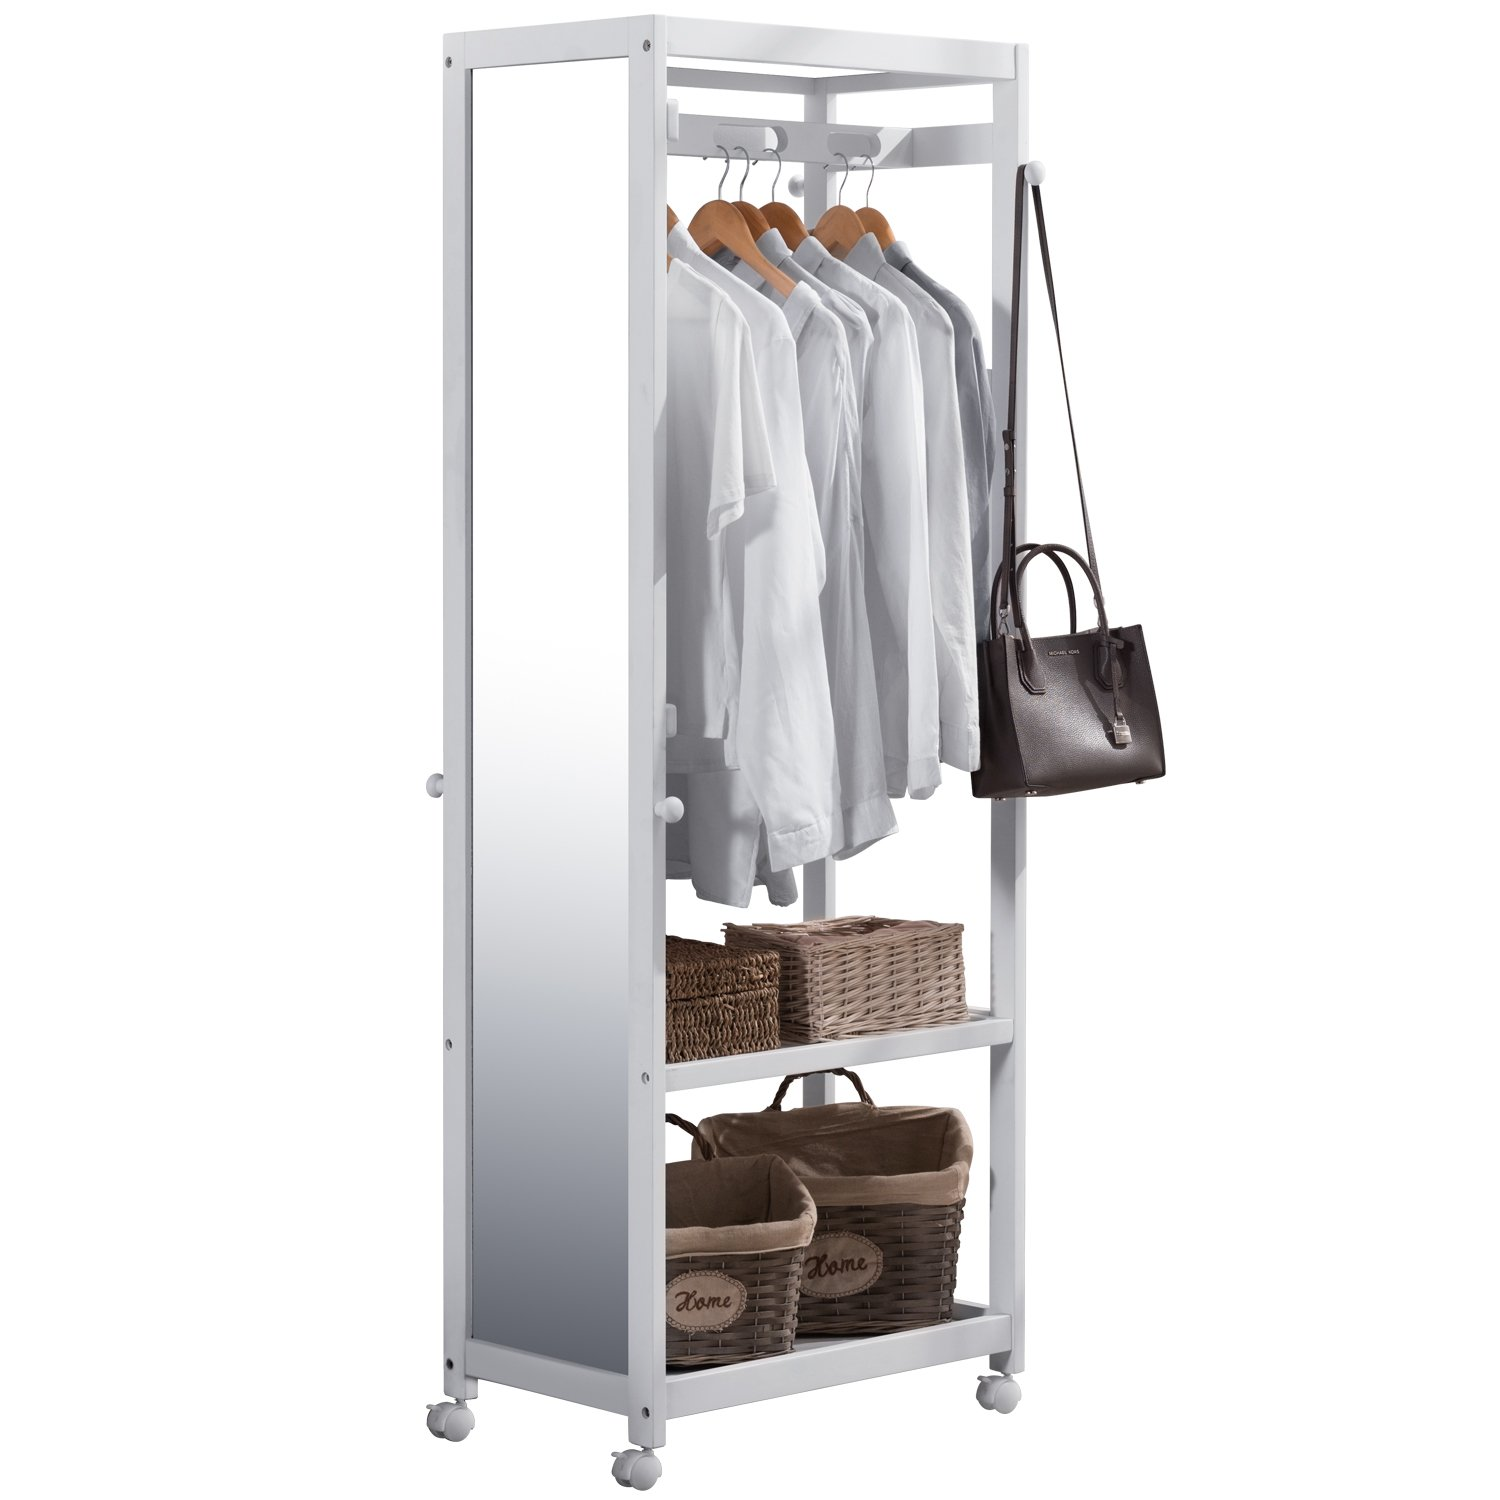 Tiny Times Free Standing Armoire Wardrobe Closet with Full Length Mirror, 67'' Tall Wooden Closet Storage Wardrobe with Brake Wheels,Hanger Rod,Coat Hooks,Entryway Storage Shelves Organizer- White by Tiny Times